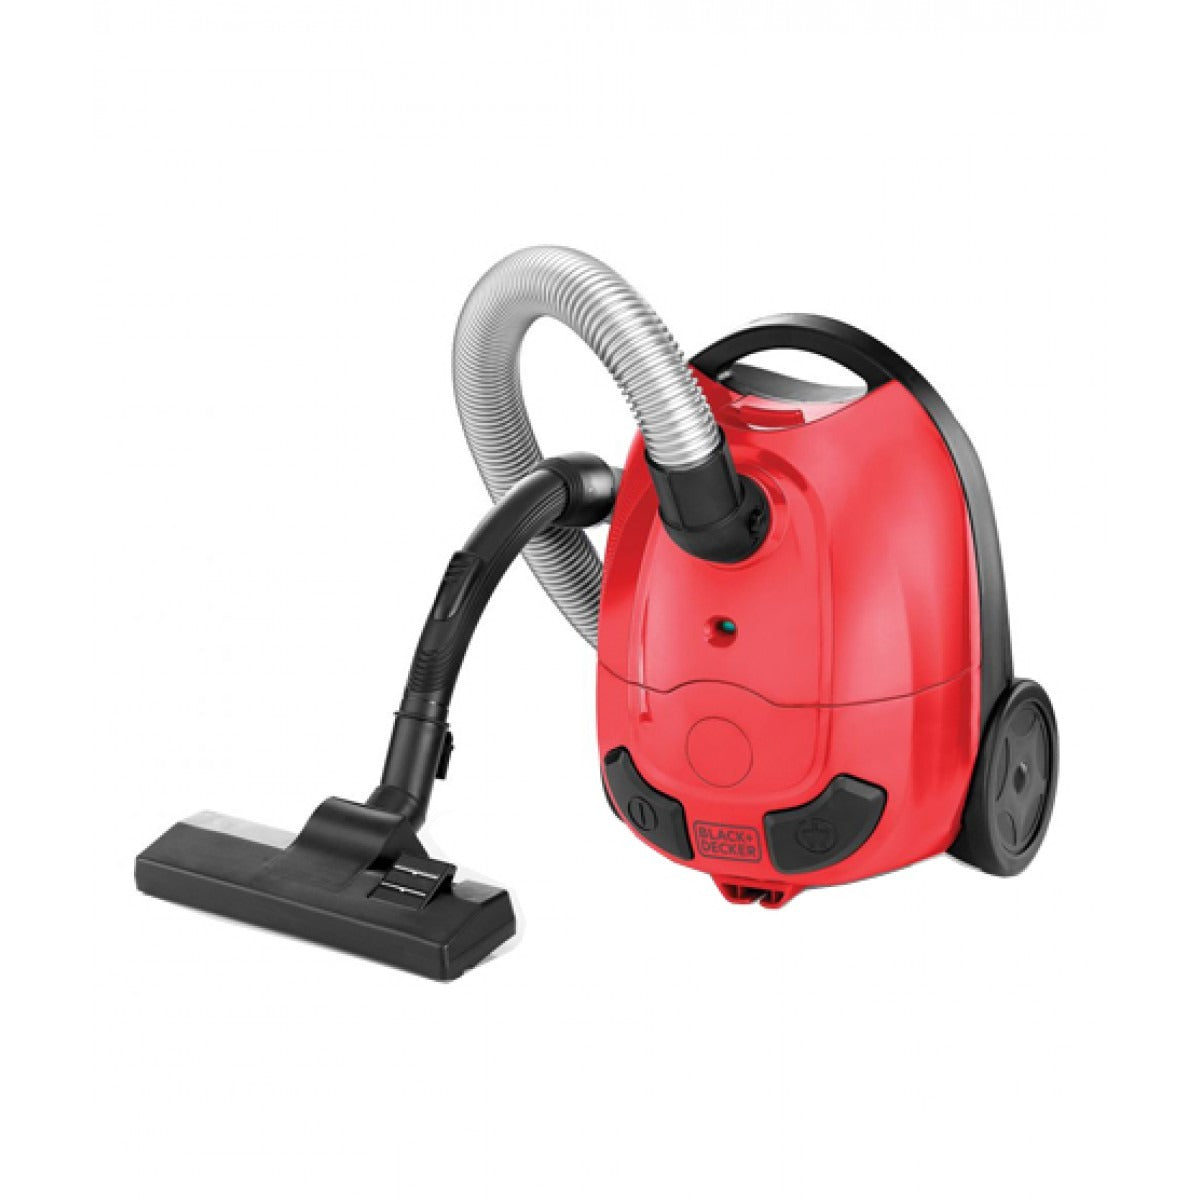 Black & Decker Vacuum Cleaner - VM1200-B5